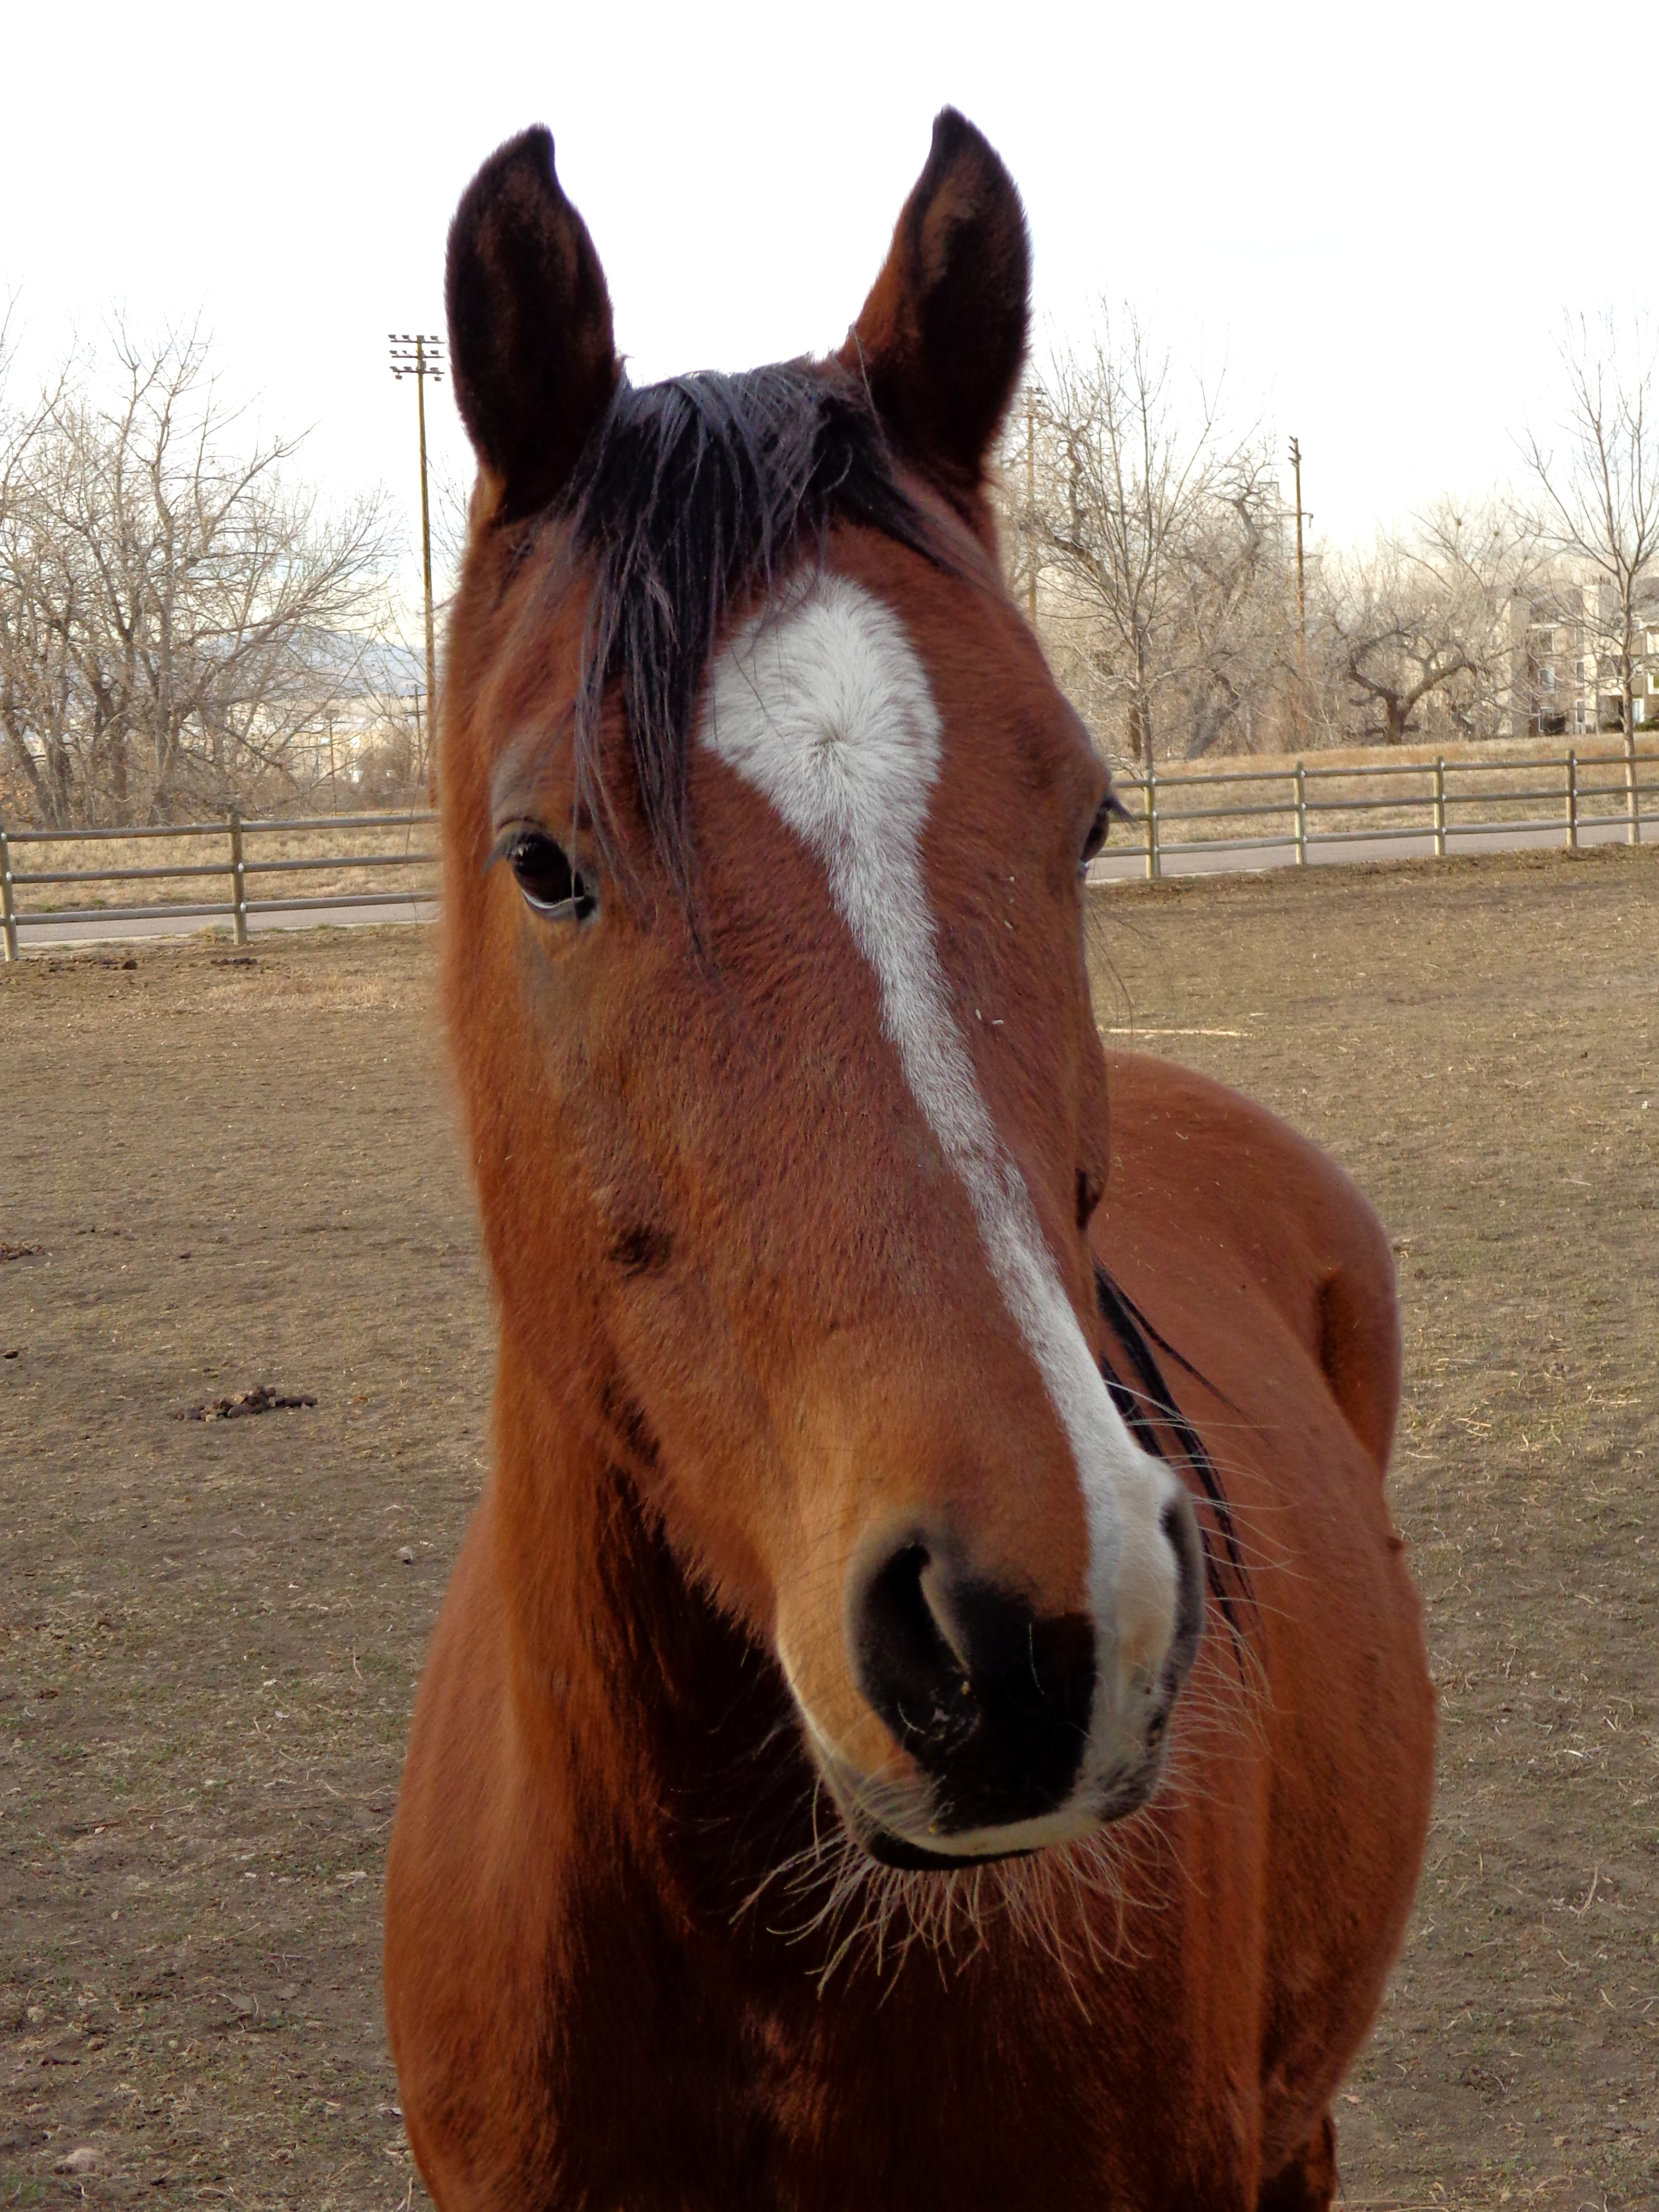 brown horse with white blaze or stripe picture | free photograph